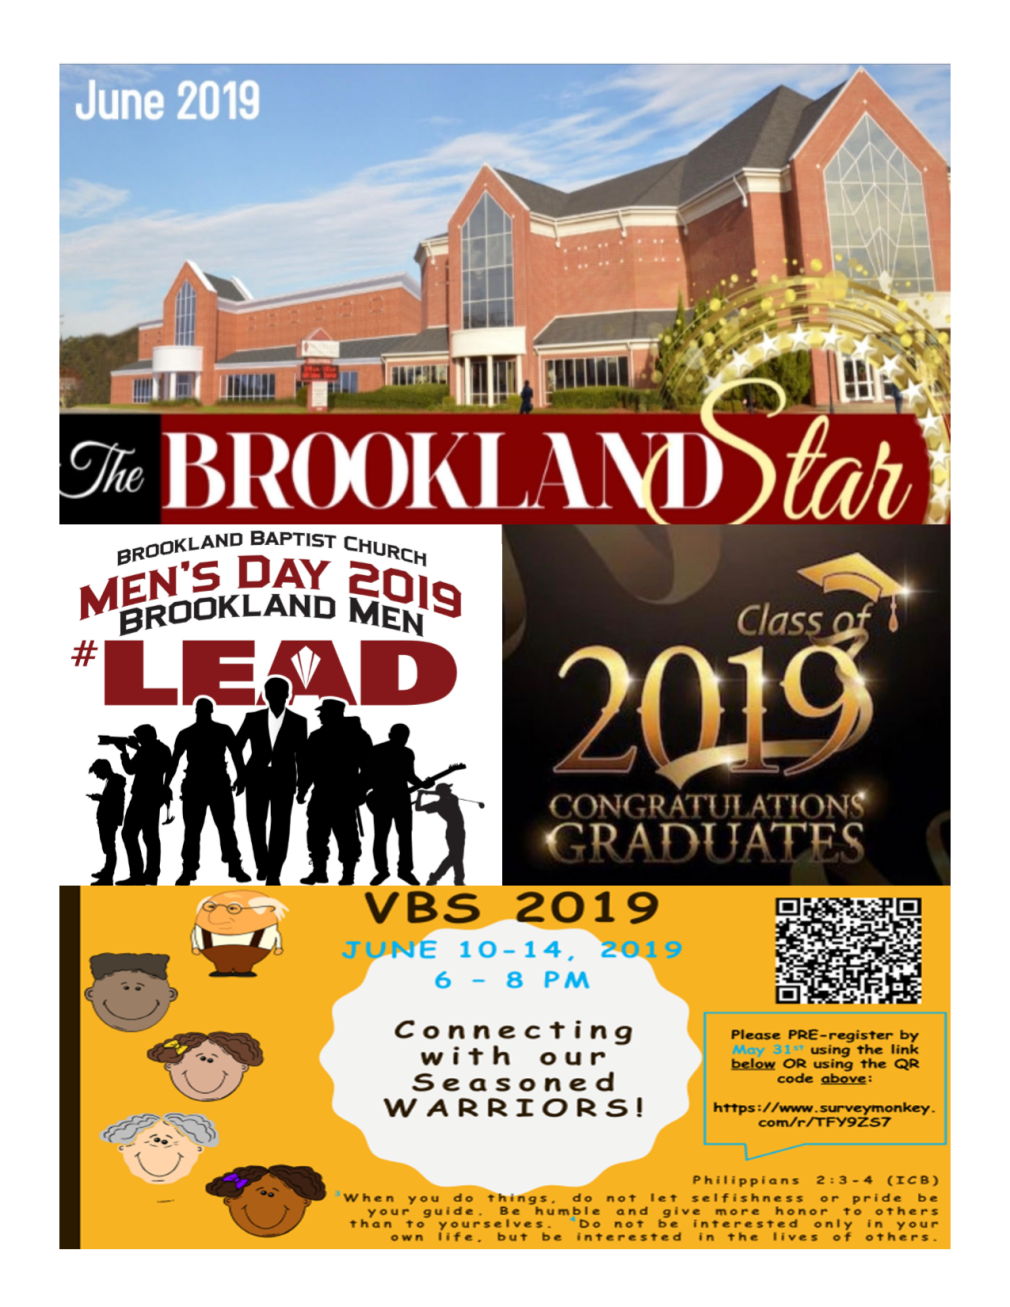 The Brookland Star June 2019 Edition